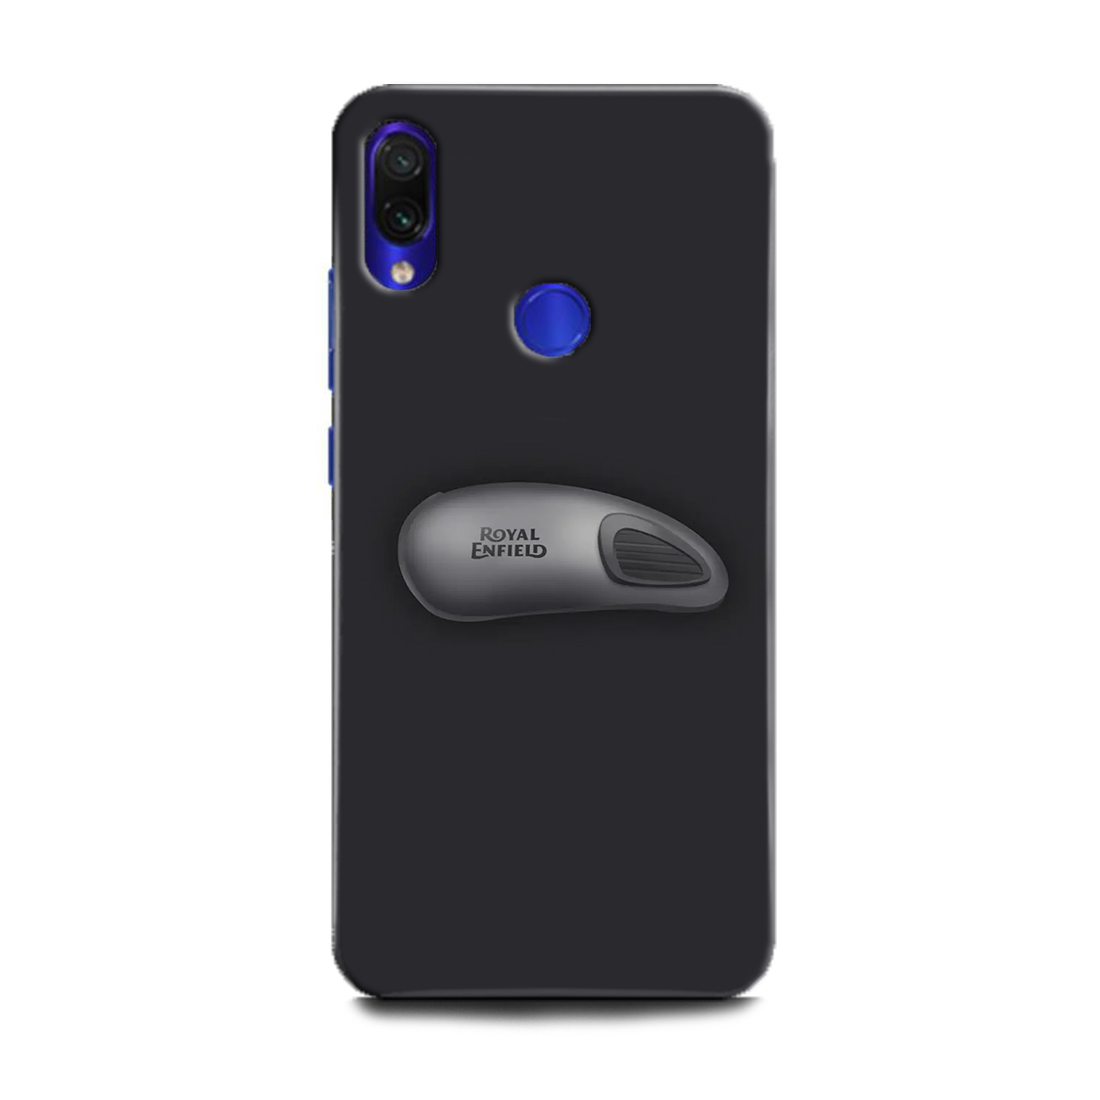 INDICRAFT Mobile Back Cover For Mi Redmi Note 7s / Hard Case (Bike, Bullet, Royal Enfield, Enfield, Grey, Super Bike, MZB7742IN) (AB-RedmiNote7s-0799)